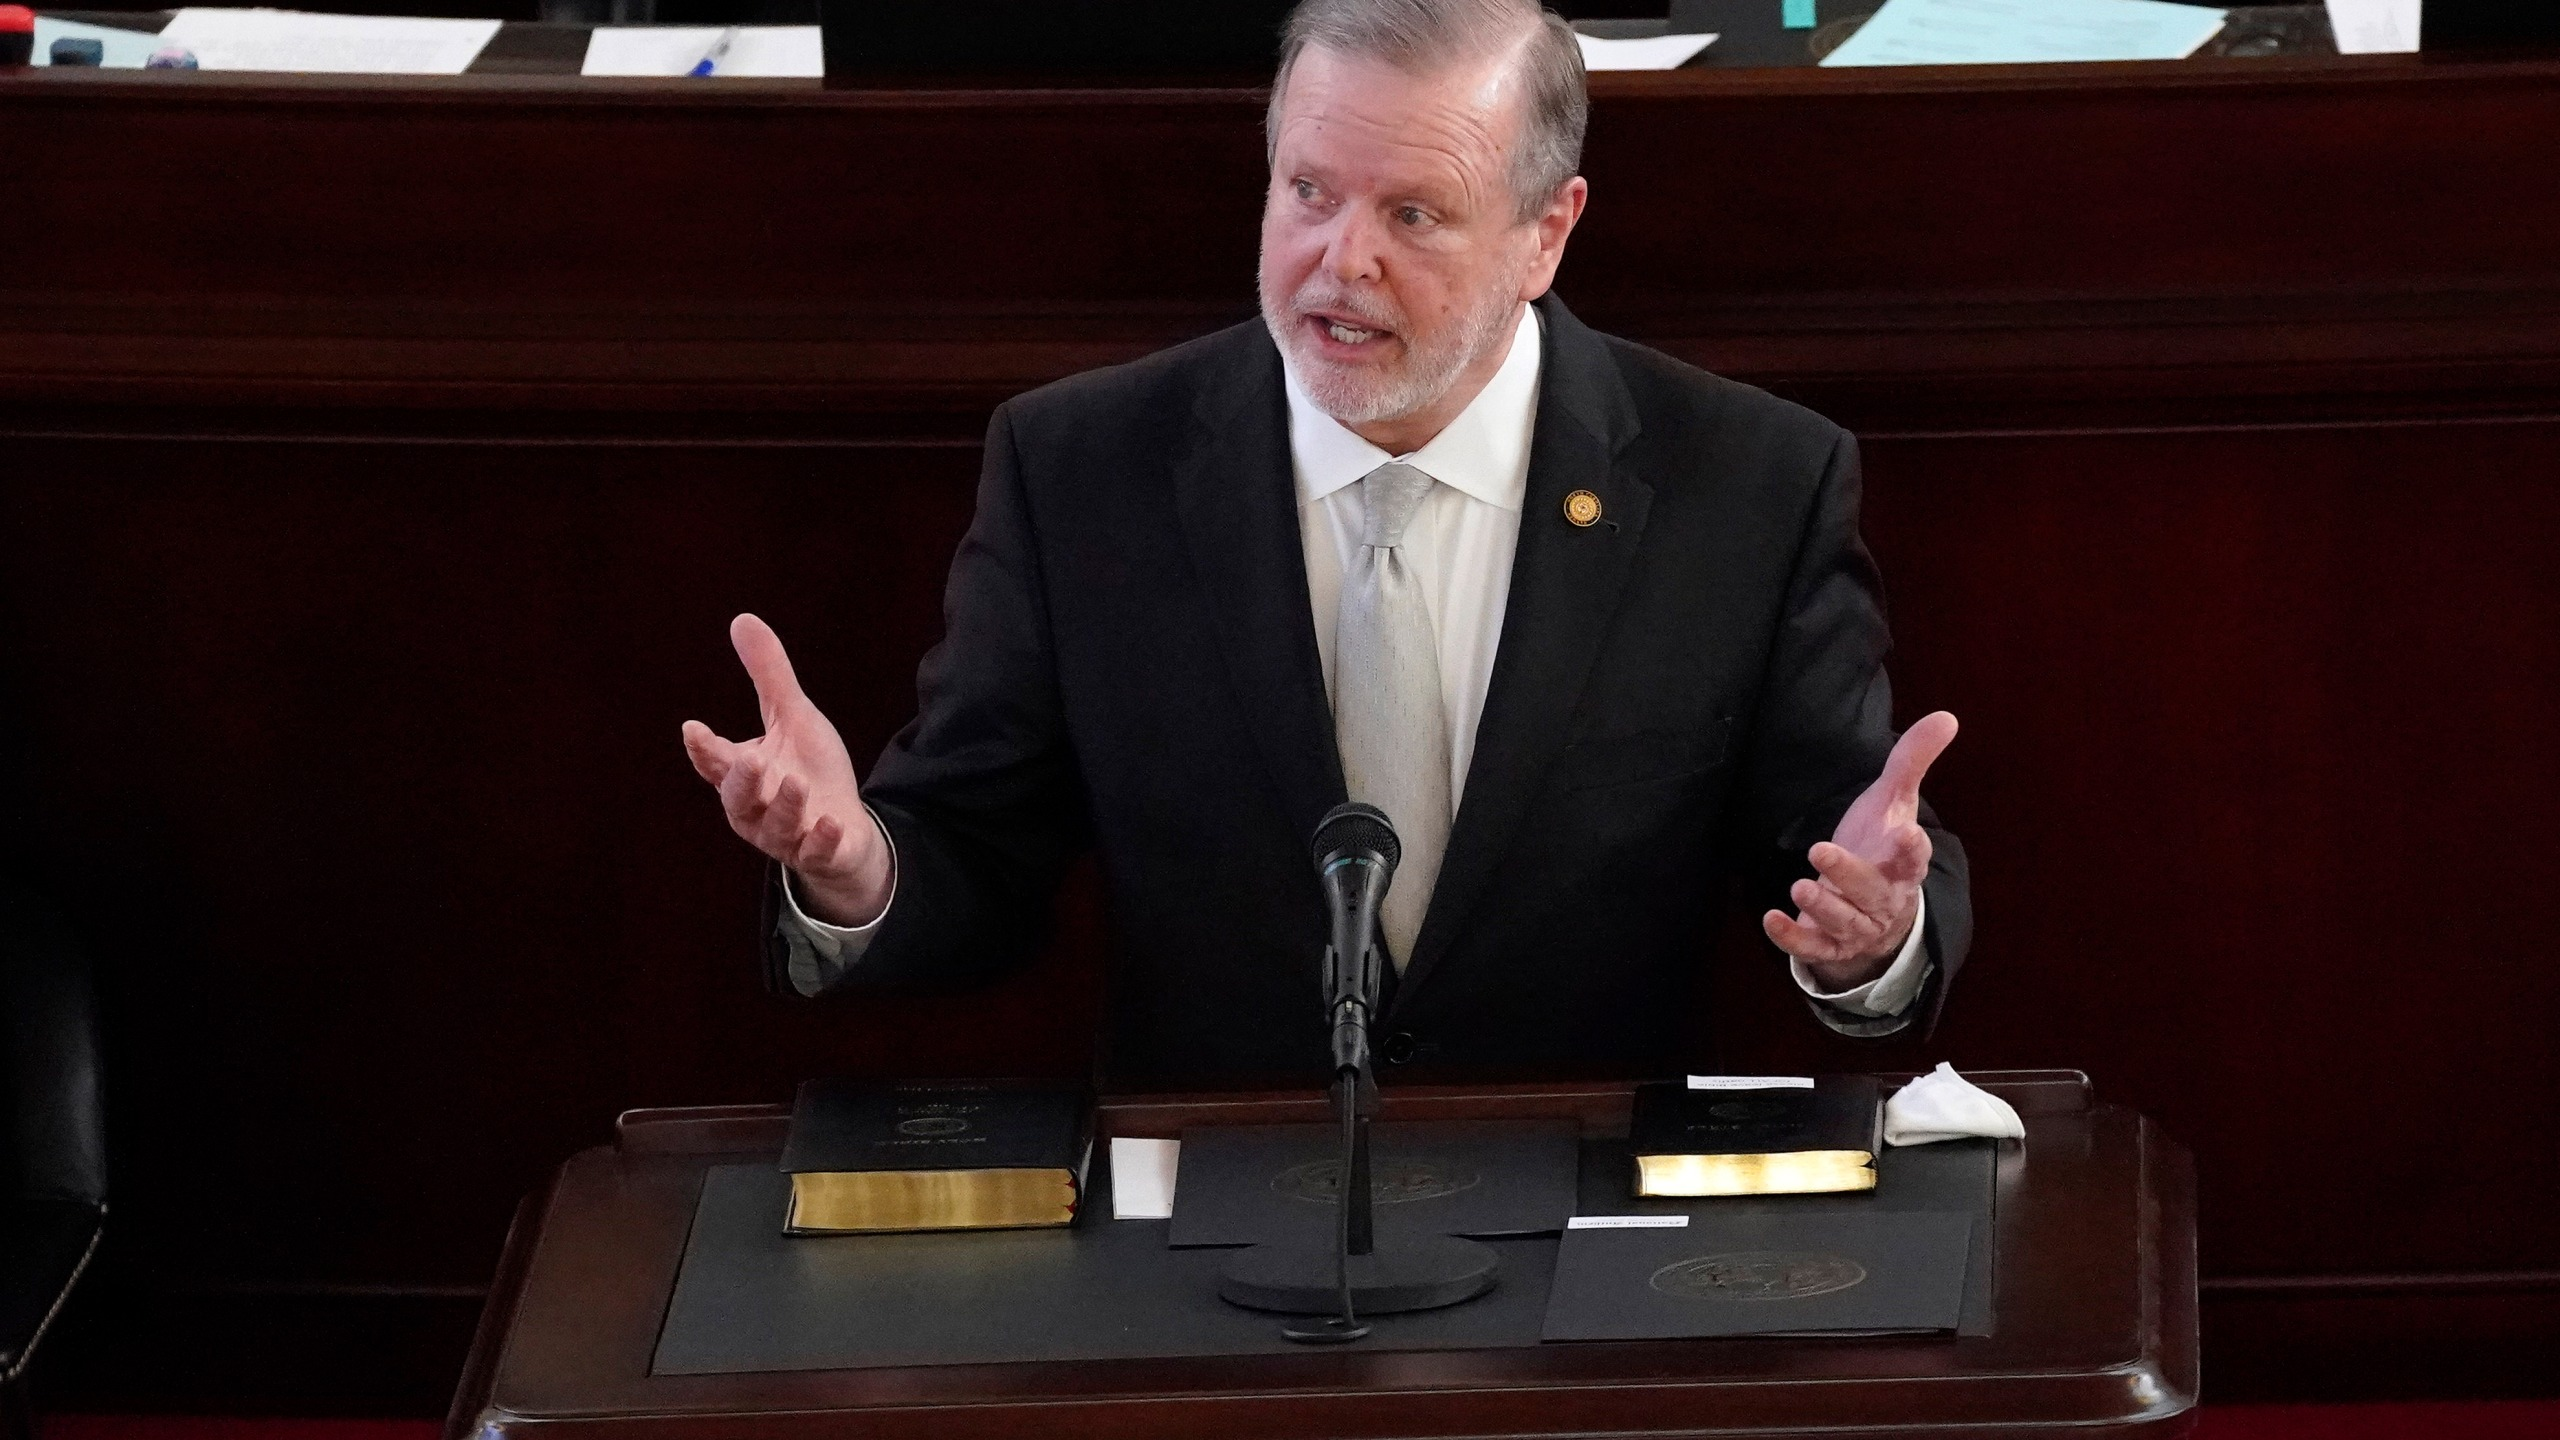 FILE - In this Jan. 13, 2021 file photo, Senate President Pro Tempore Phil Berger, R-Rockingham speaks after being sworn in during the opening session of the North Carolina General Assembly in Raleigh, N.C. The office of Berger said on Tuesday, April 20, the chamber won't advance a controversial bill put forward this month by three GOP members that sought to limit medical treatments for transgender people under 21.(AP Photo/Gerry Broome, File)